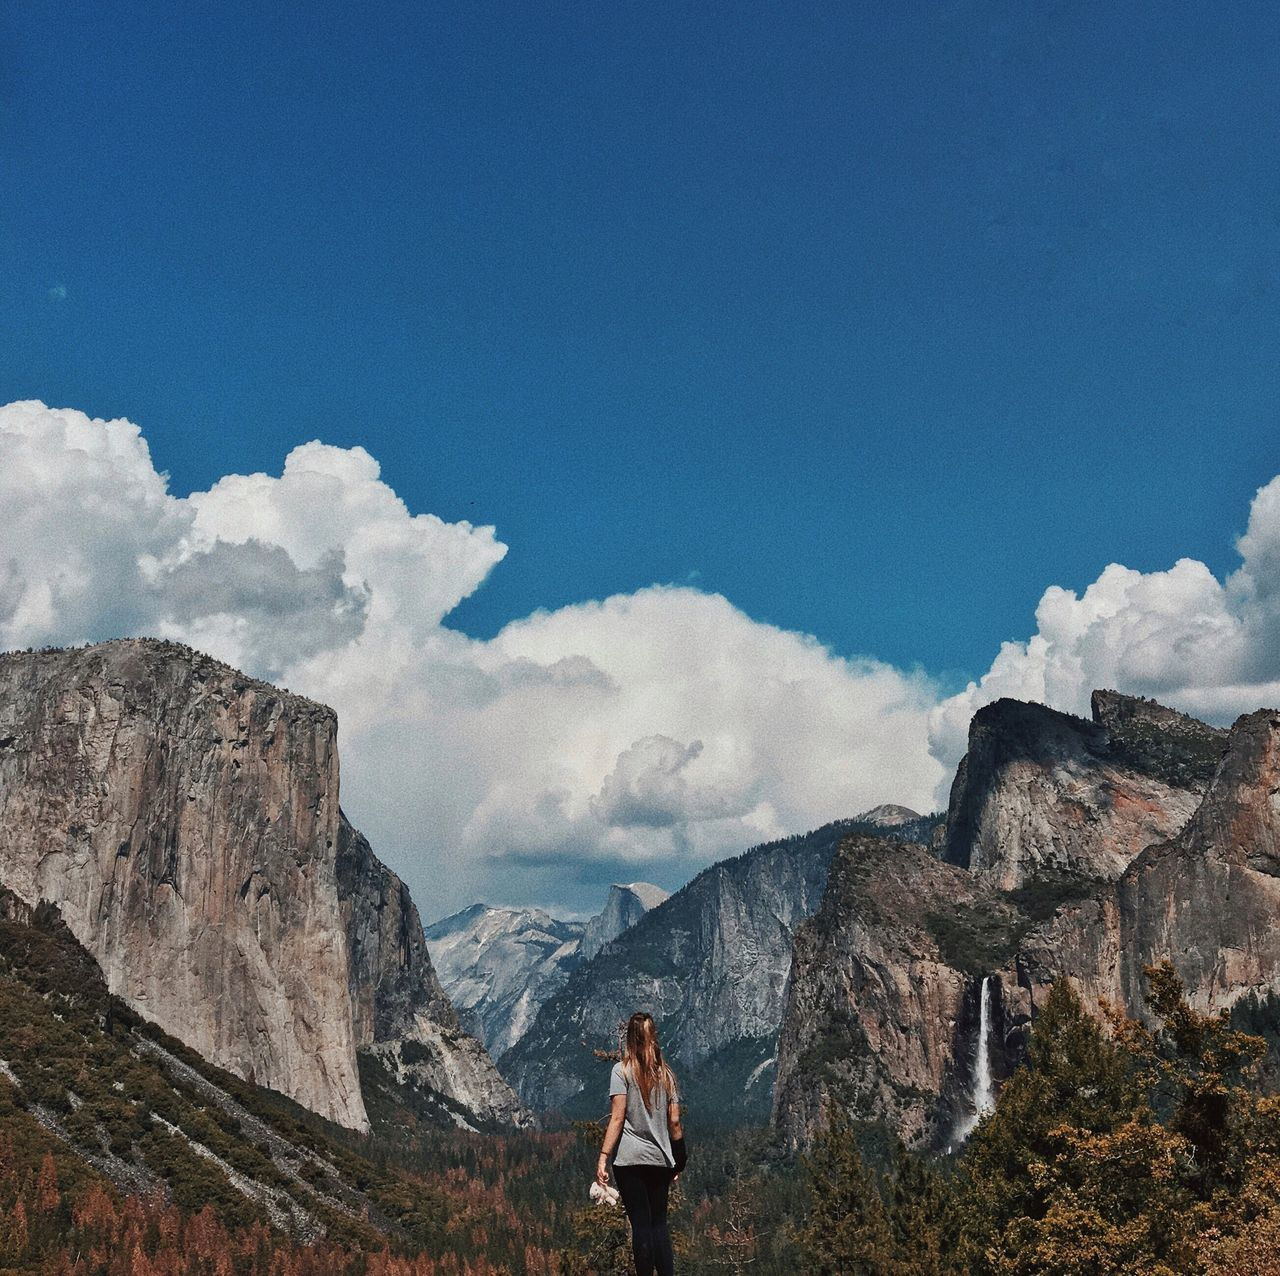 Amanda and the Bear Sky One Person Cloud - Sky Mountain Nature Beauty In Nature Scenics Standing Mountain Range Real People Day Leisure Activity Outdoors Tranquil Scene Landscape People Yosemite National Park Teddy Bear TheAdventuresOfAmanda The Adventures Of Amanda Miles Away